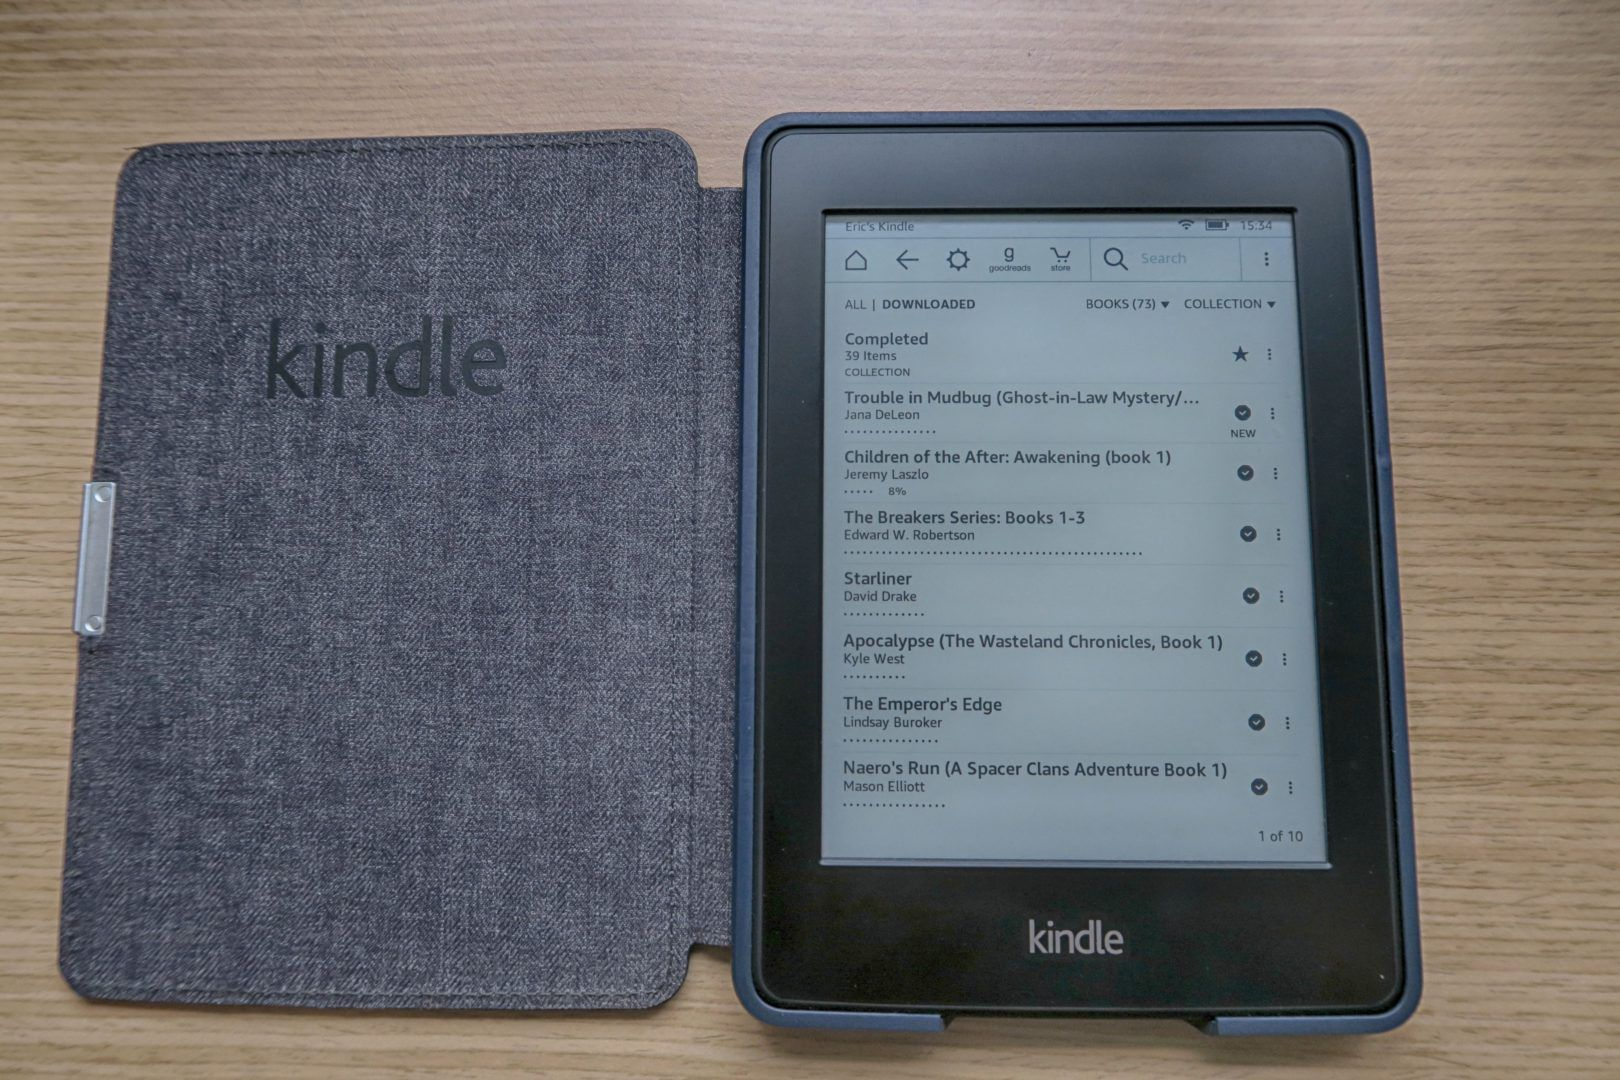 how to buy and download kindle books on ipad